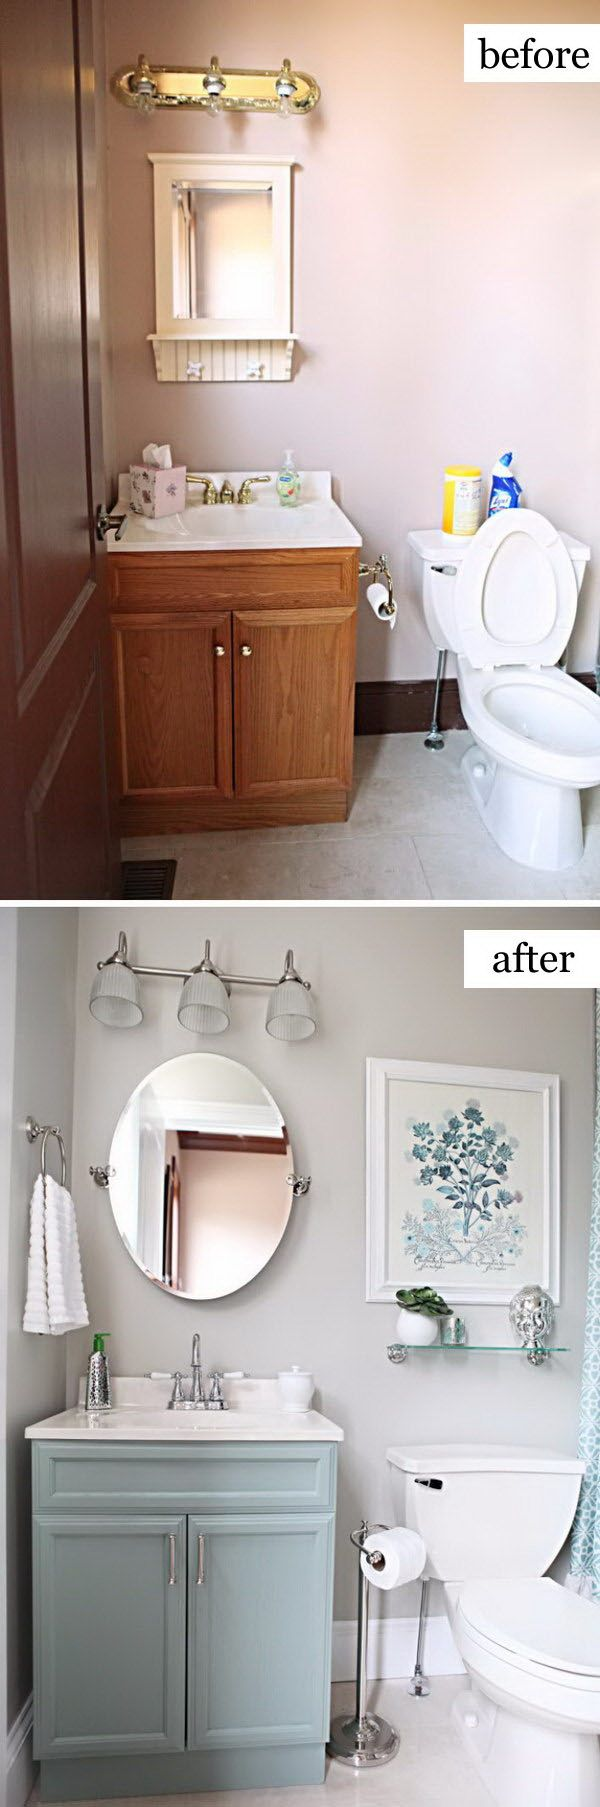 Half Bathroom Remodel Ideas best 25+ half bathroom decor ideas on pinterest | half bathroom